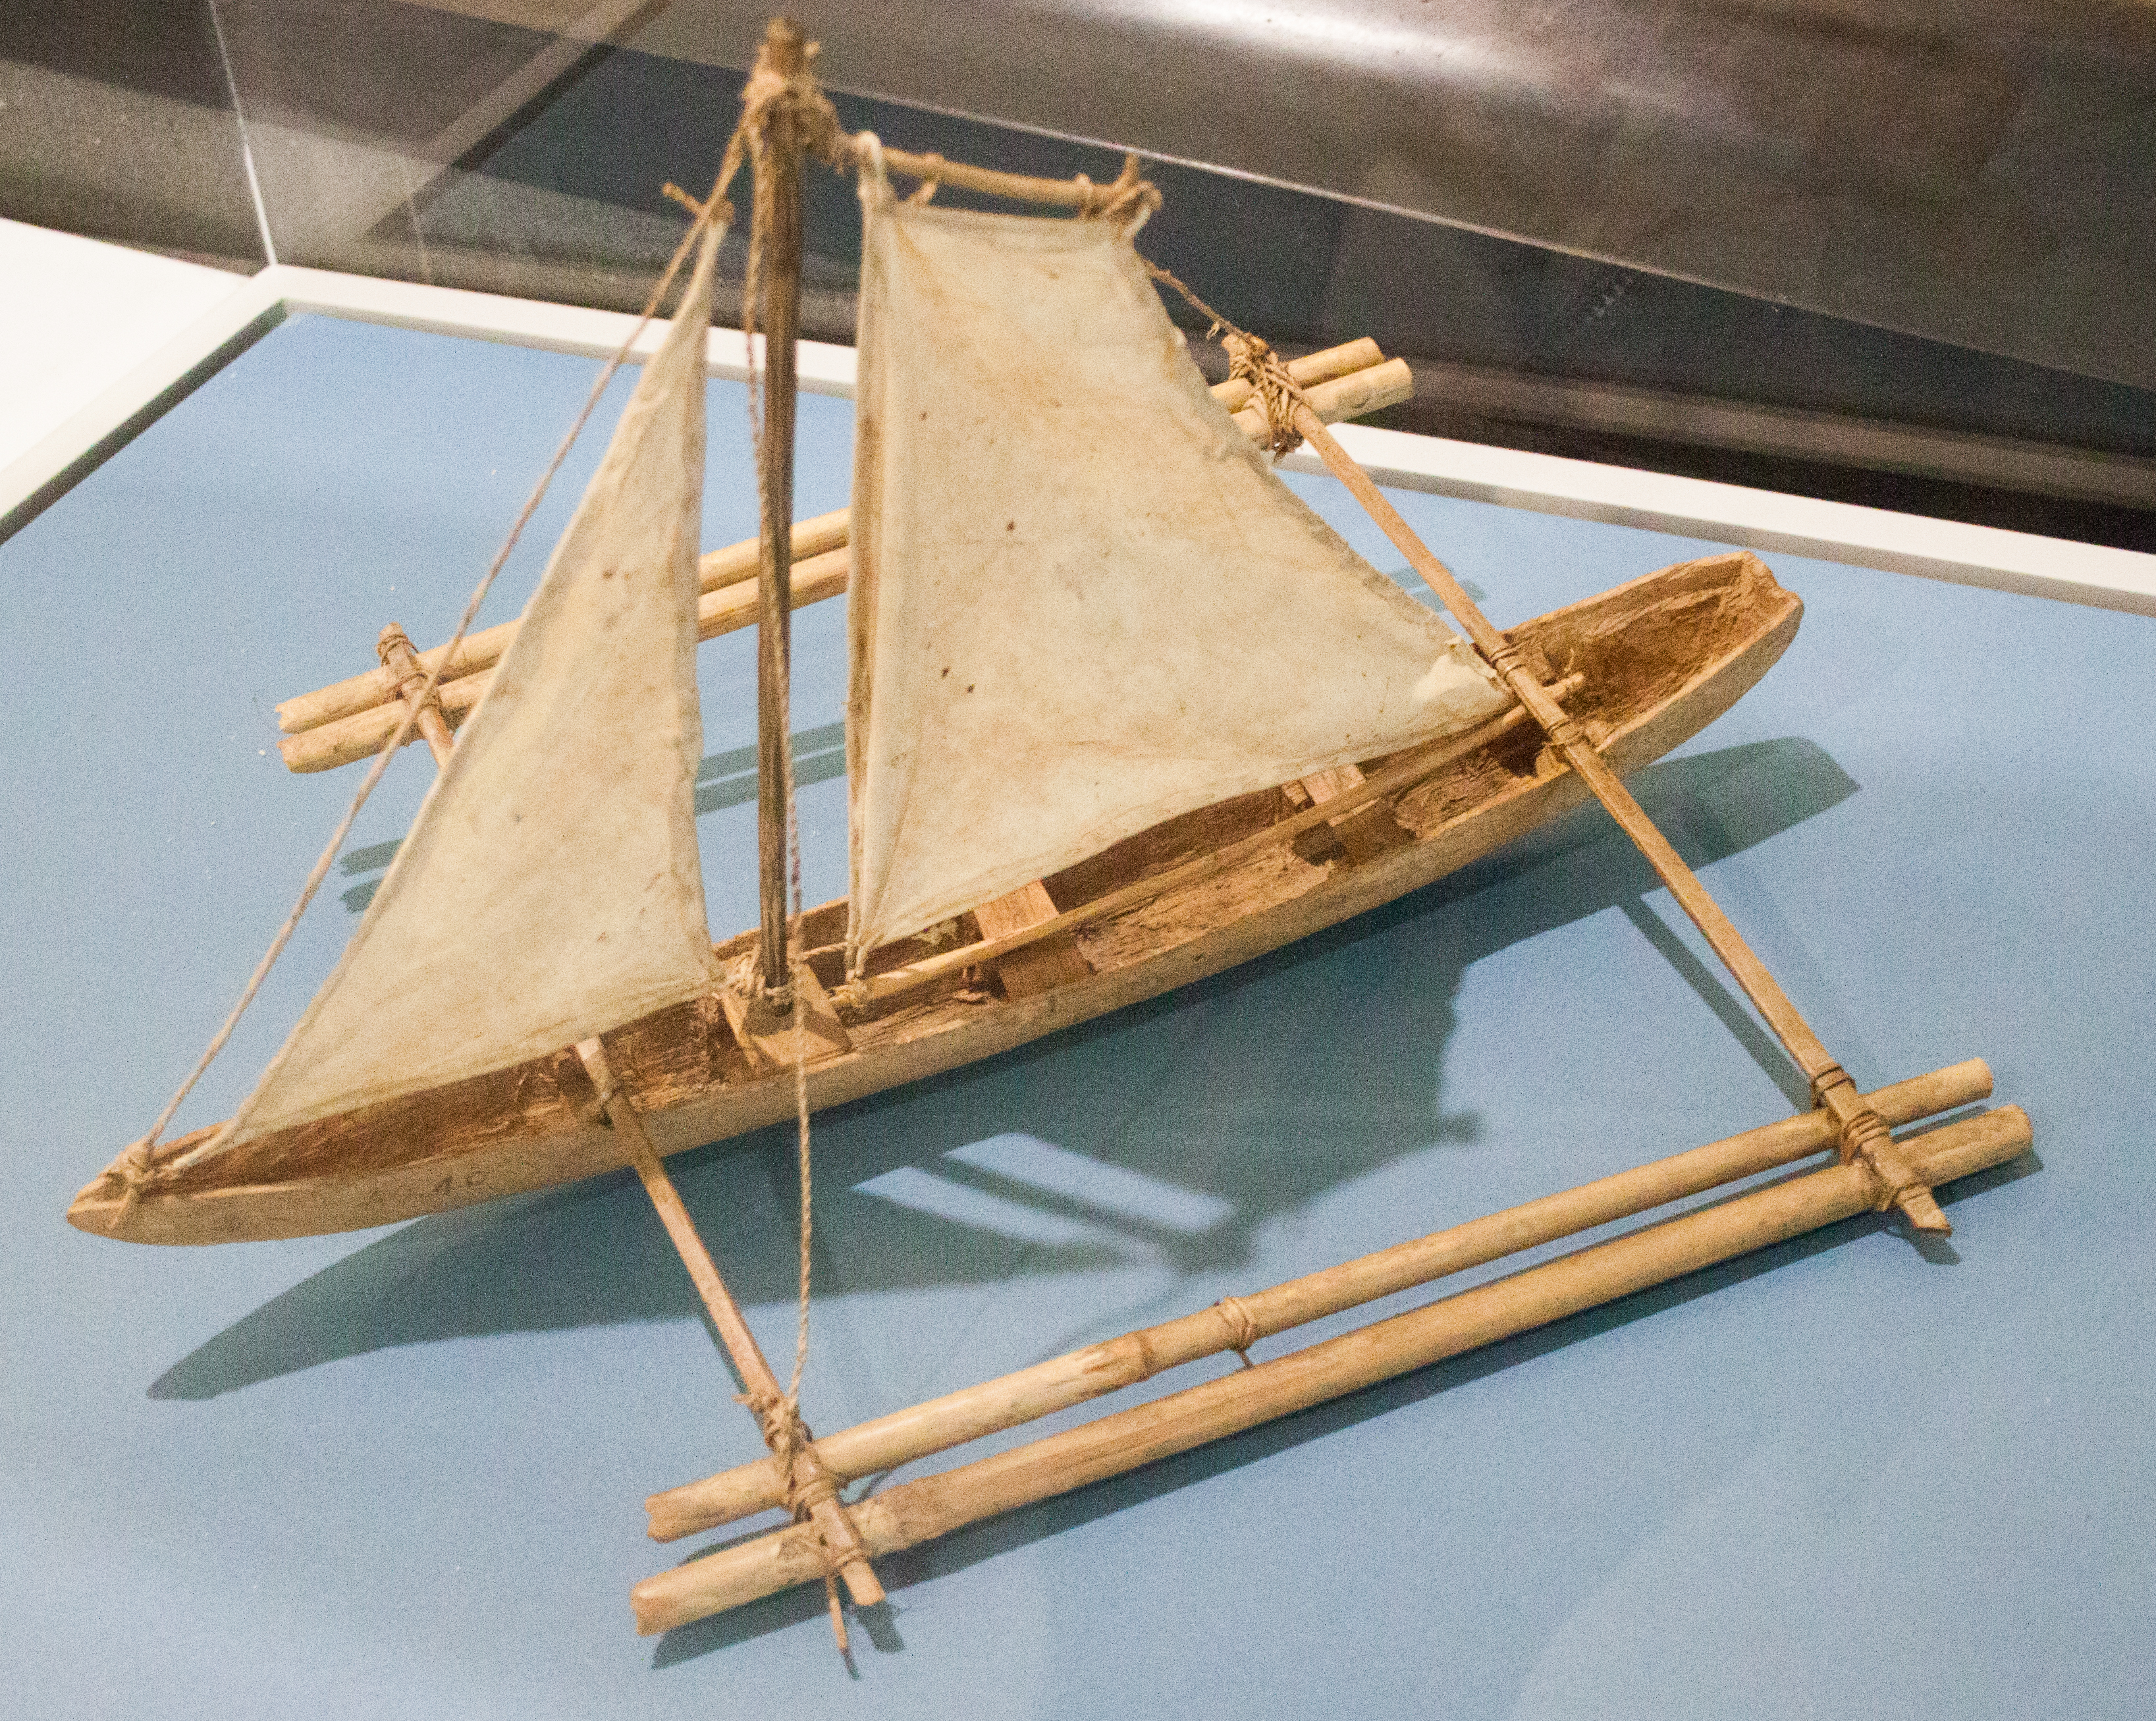 File:Philippines, sailing boat with outrigger, model in ...